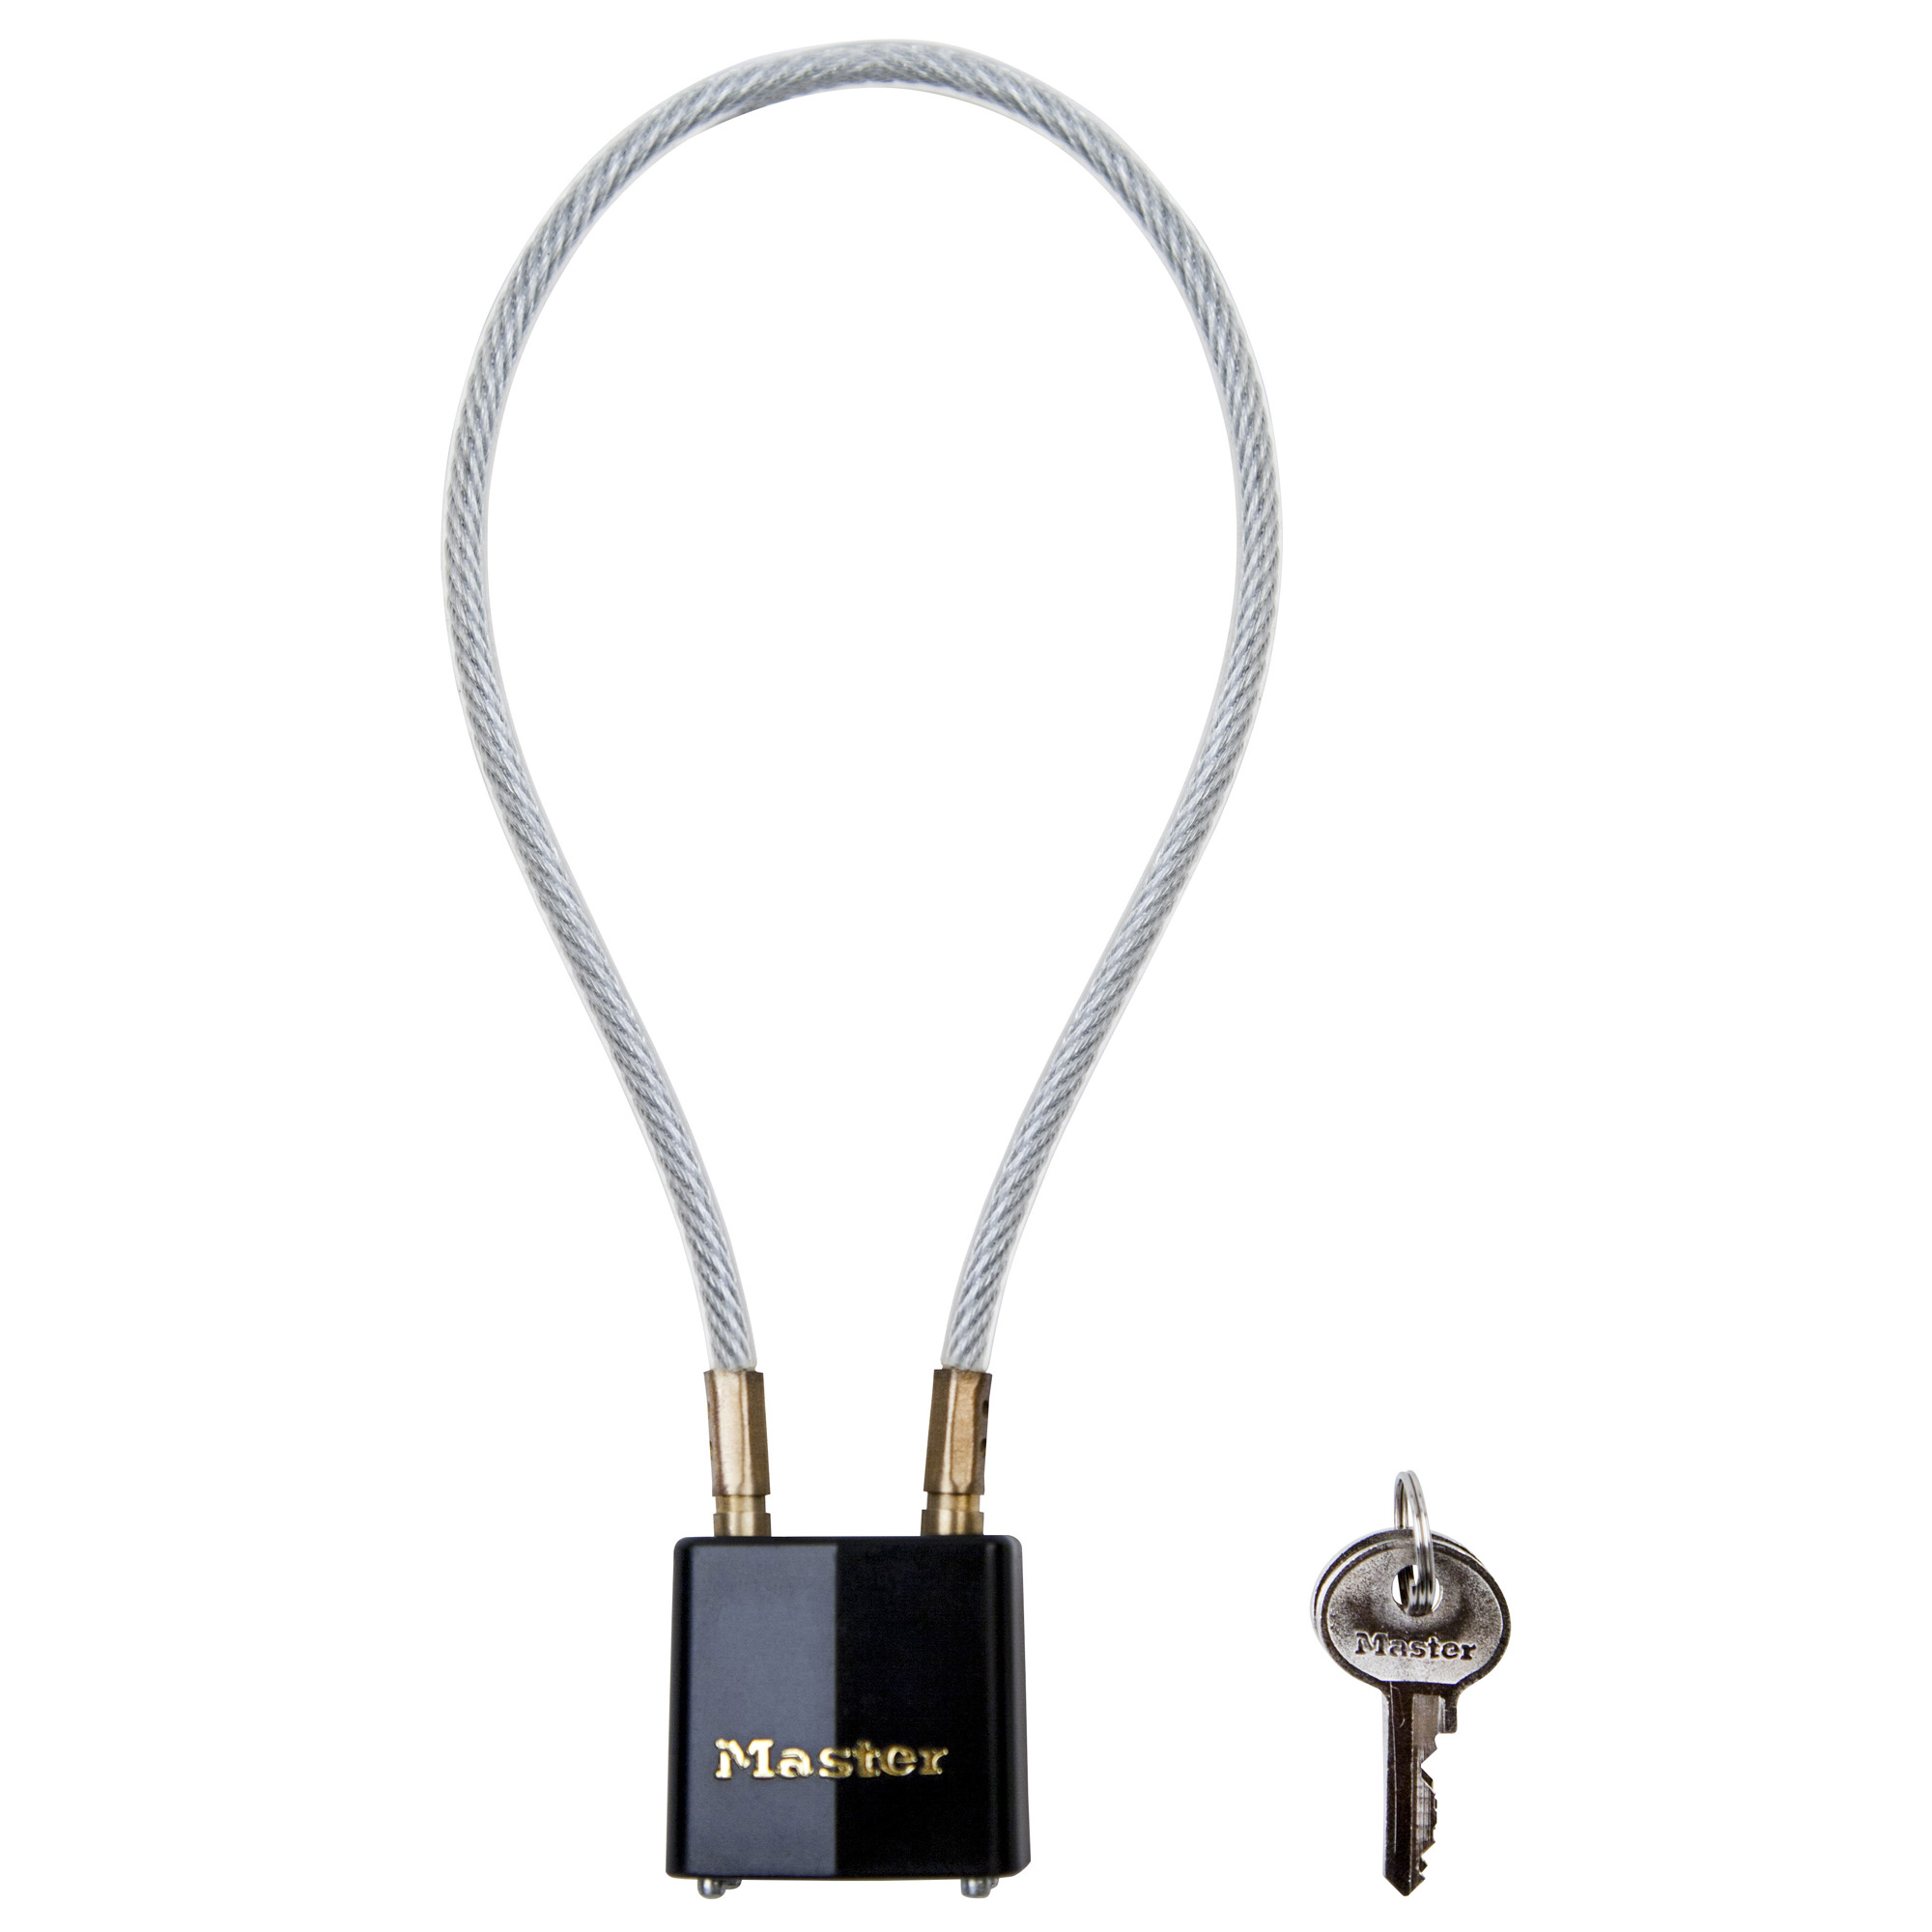 The Master Lock No. 99DSPT Cable Gun Lock is 14in (35cm) long and is made from braided steel for maximum strength and flexibility. The padlock features a 1-5/16in (33mm) wide laminated steel body for maximum strength and reliability.